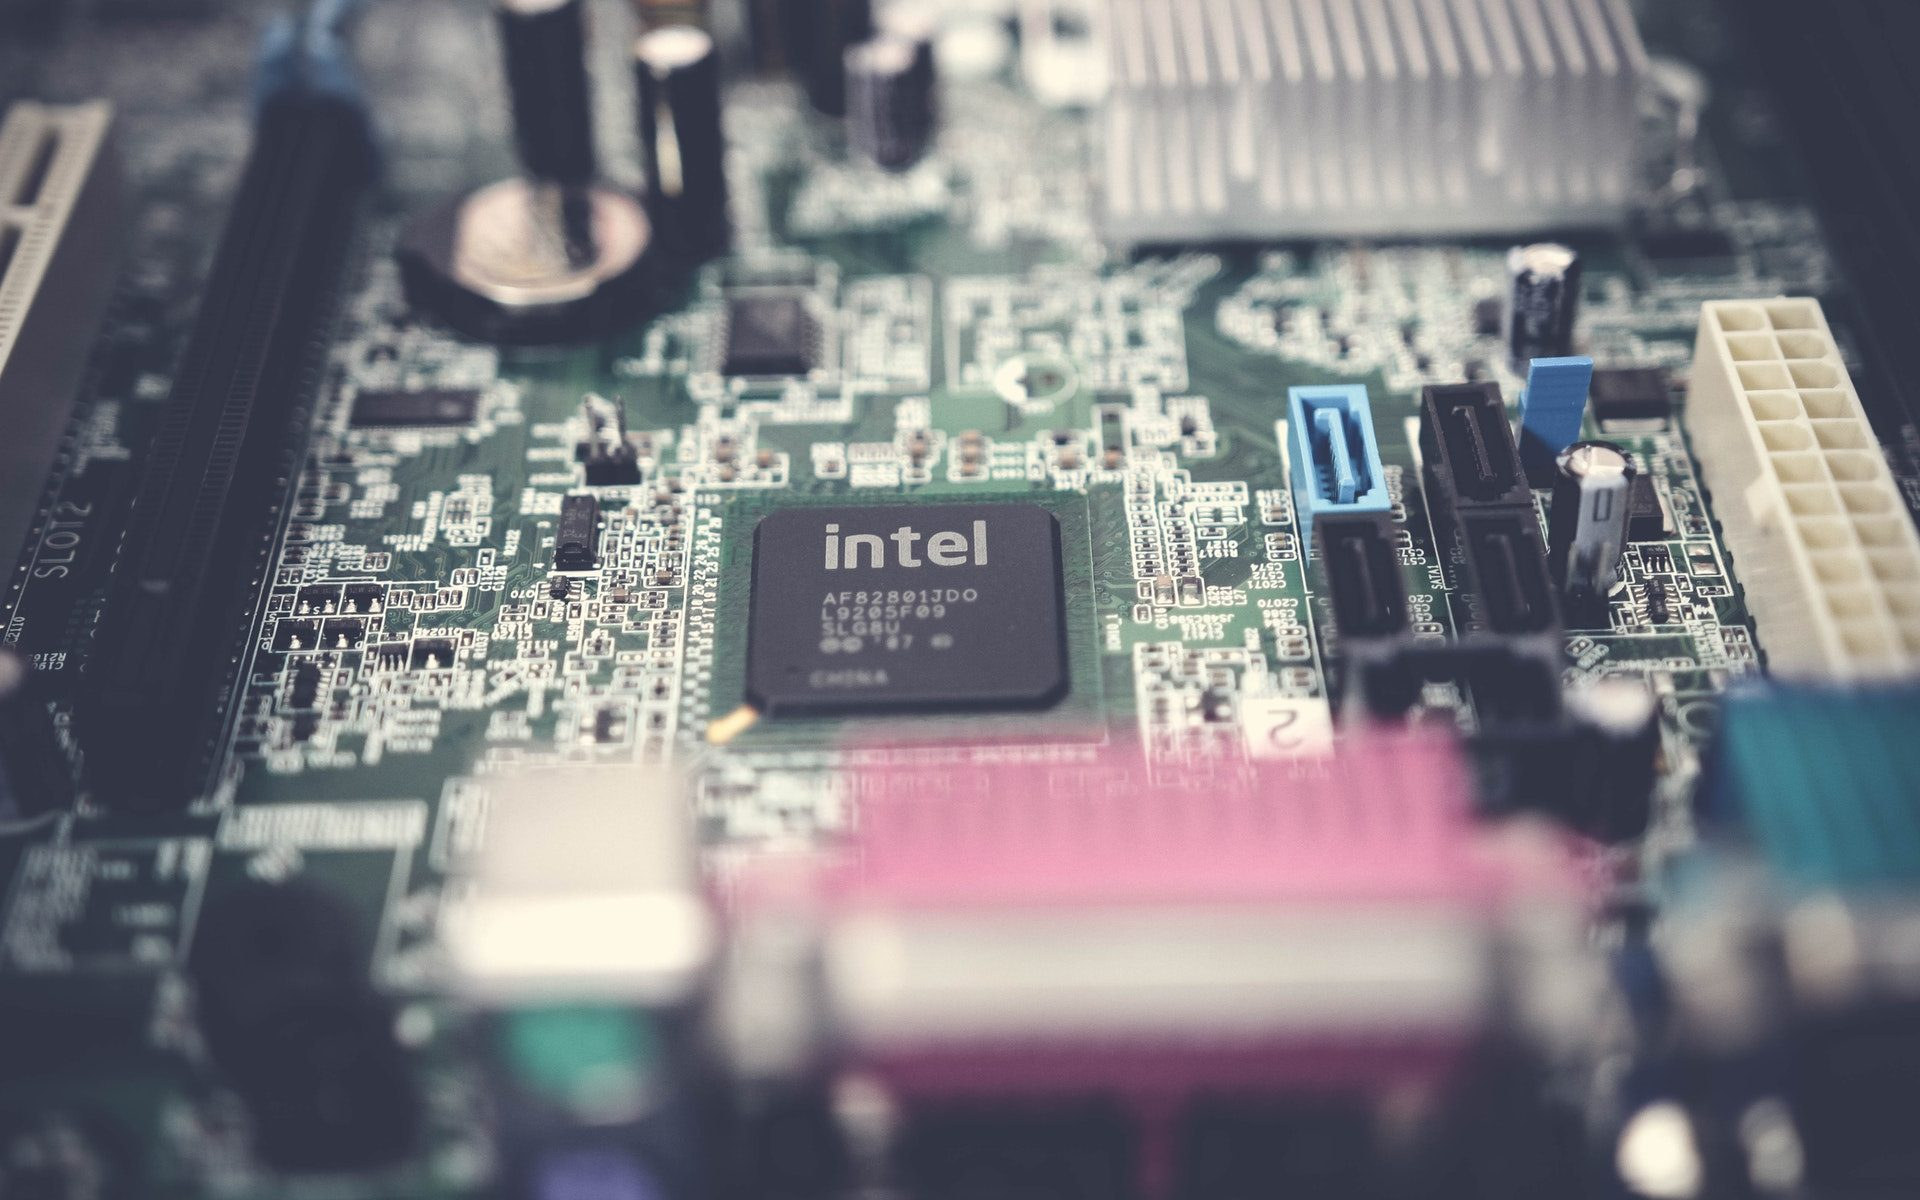 Intel CPU chip shown on computer's internal motherboard